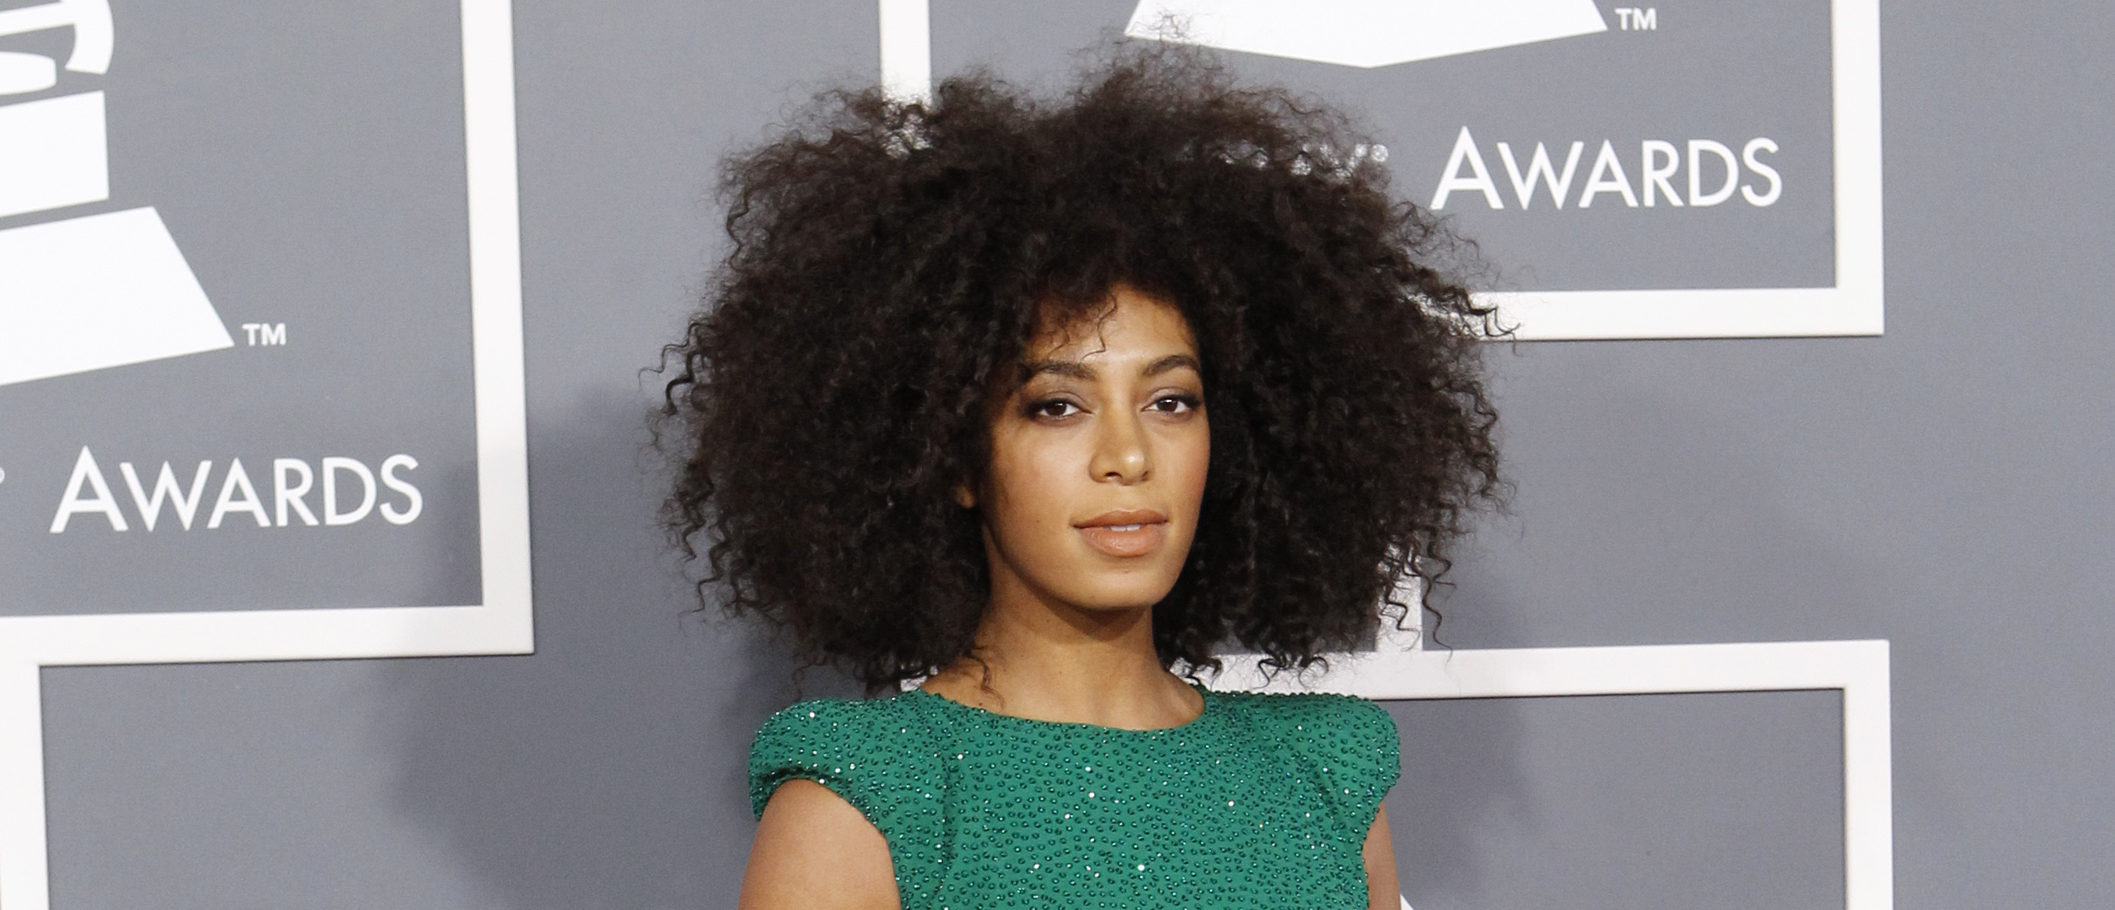 Singer Solange Knowles arrives at the 55th annual Grammy Awards in Los Angeles February 10, 2013. REUTERS/Mario Anzuoni